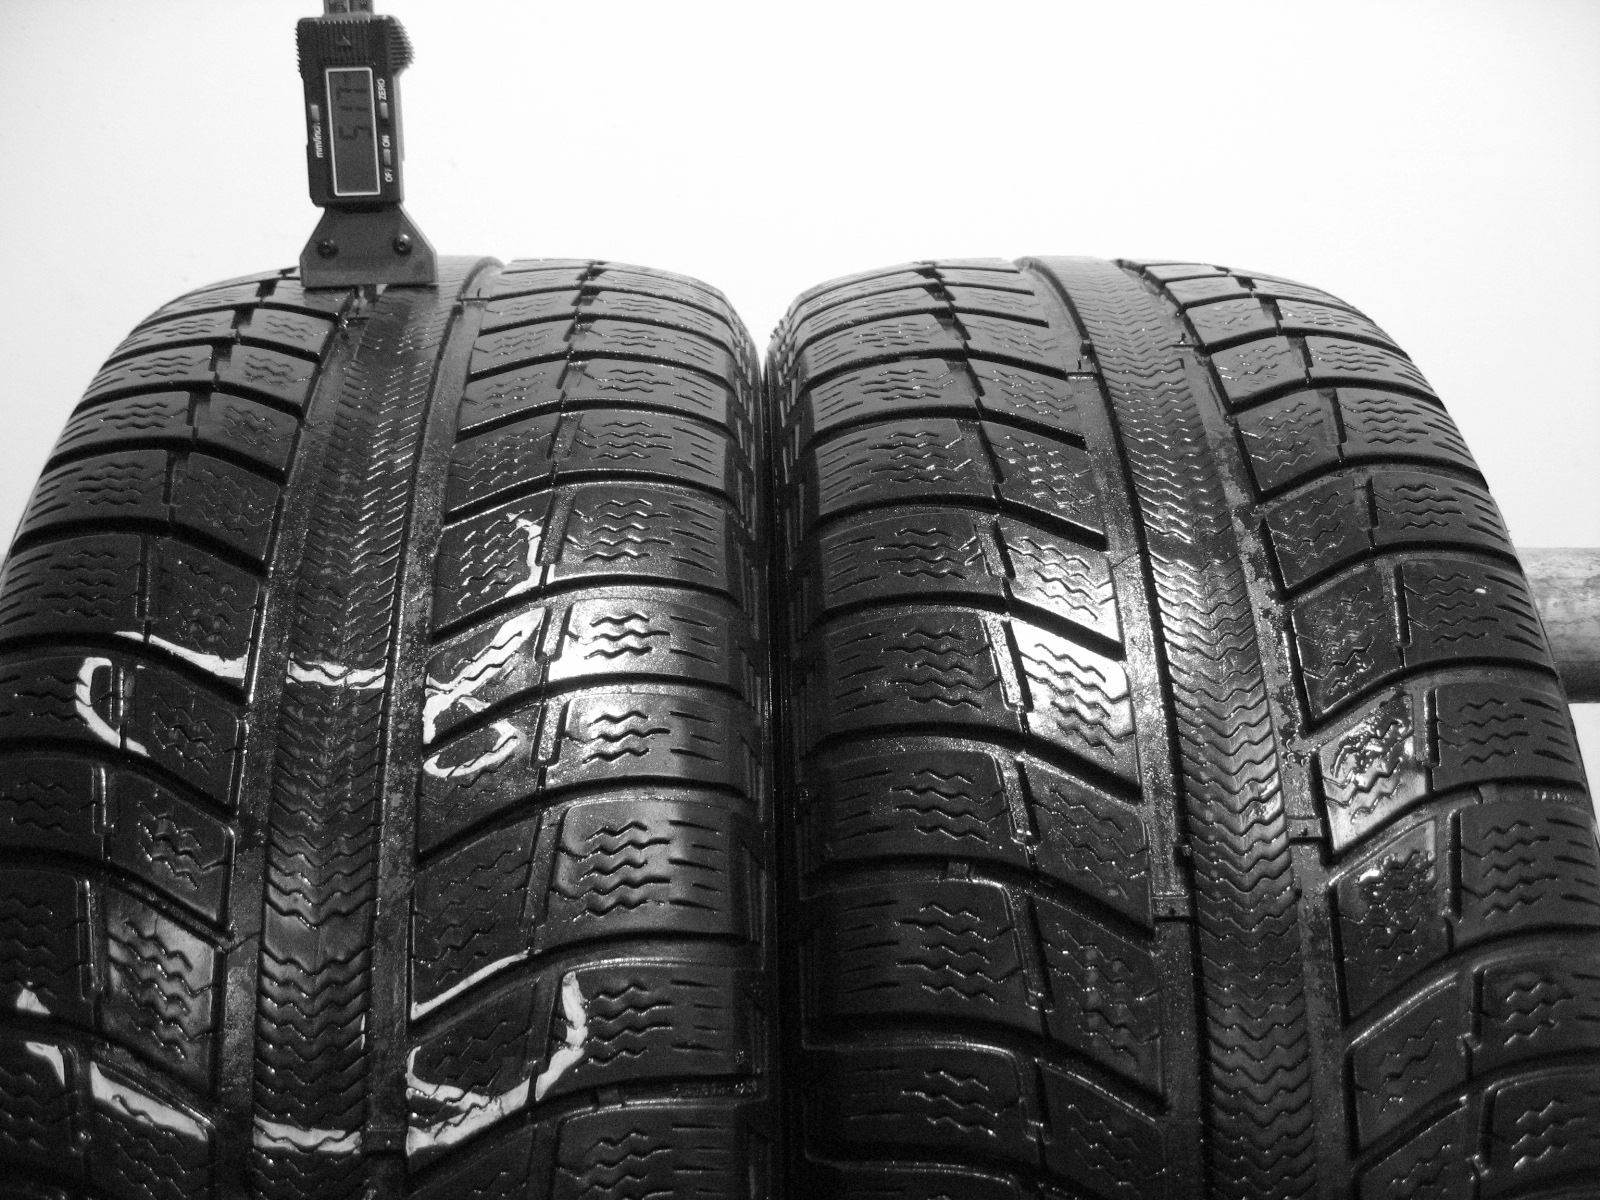 Použité-Pneu-Bazar - 225/50 R17 MICHELIN PRIMACY ALPIN PA3 3mm